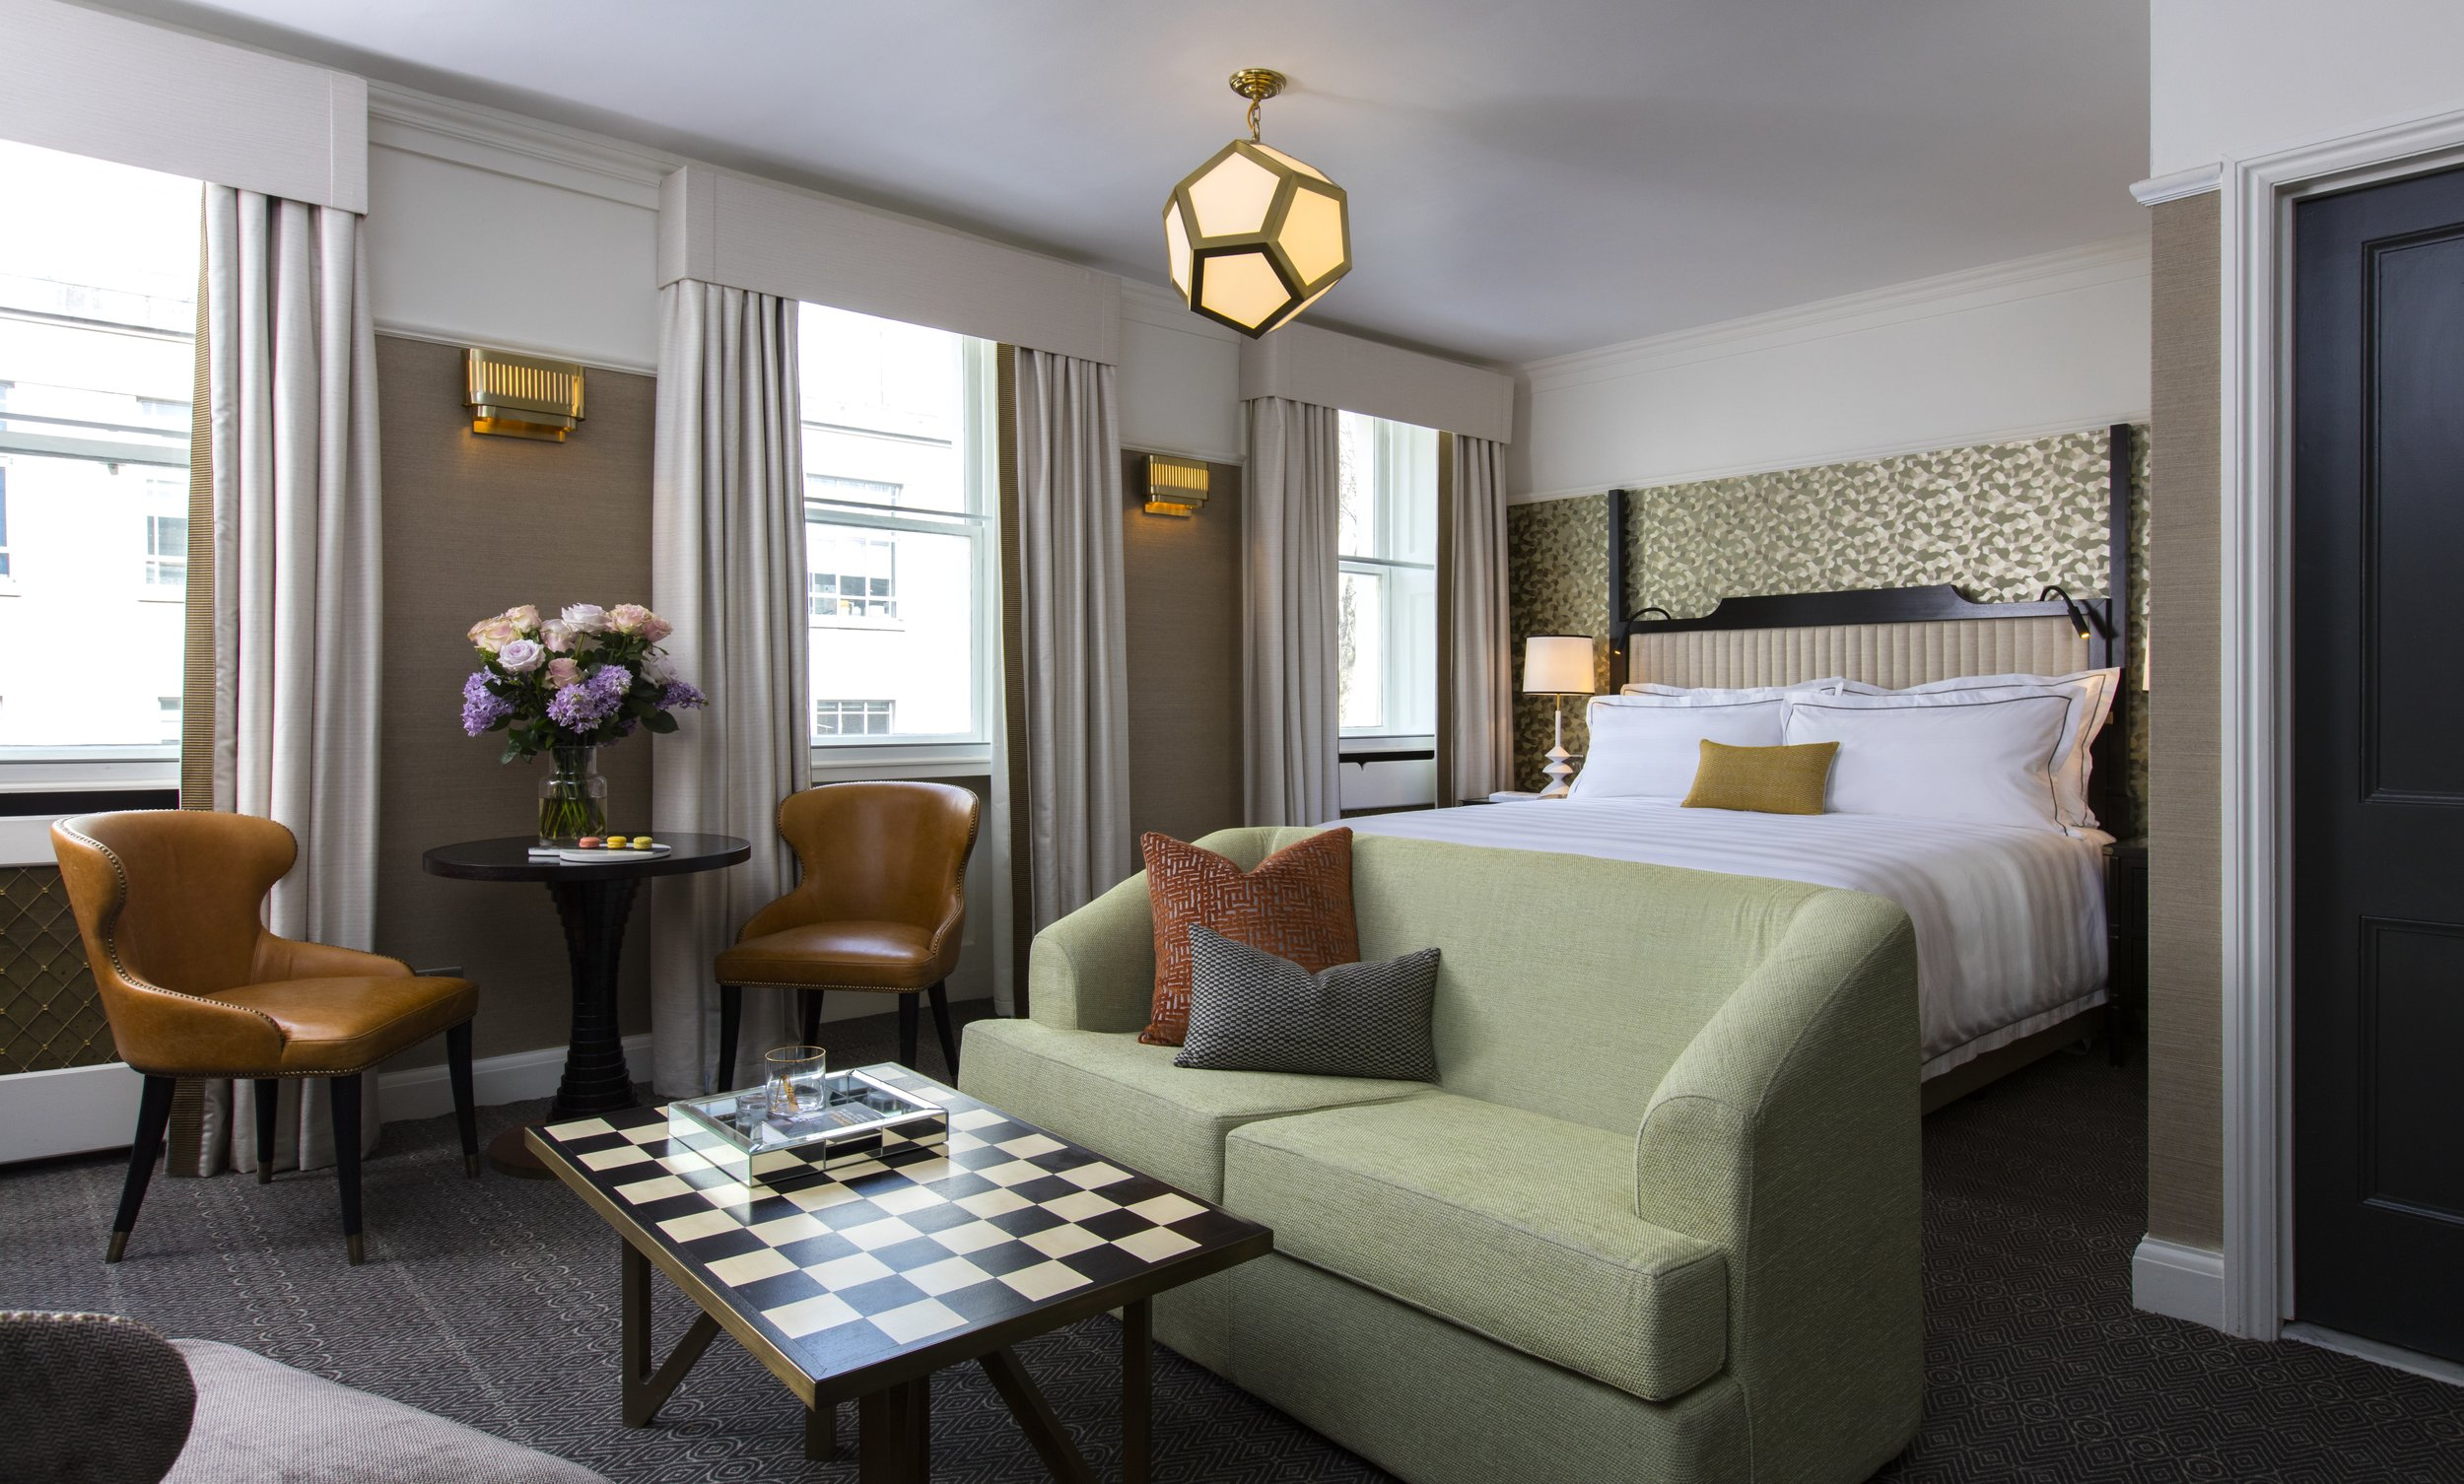 Above and cover image: The Academy London | 50 rooms from £287 per night